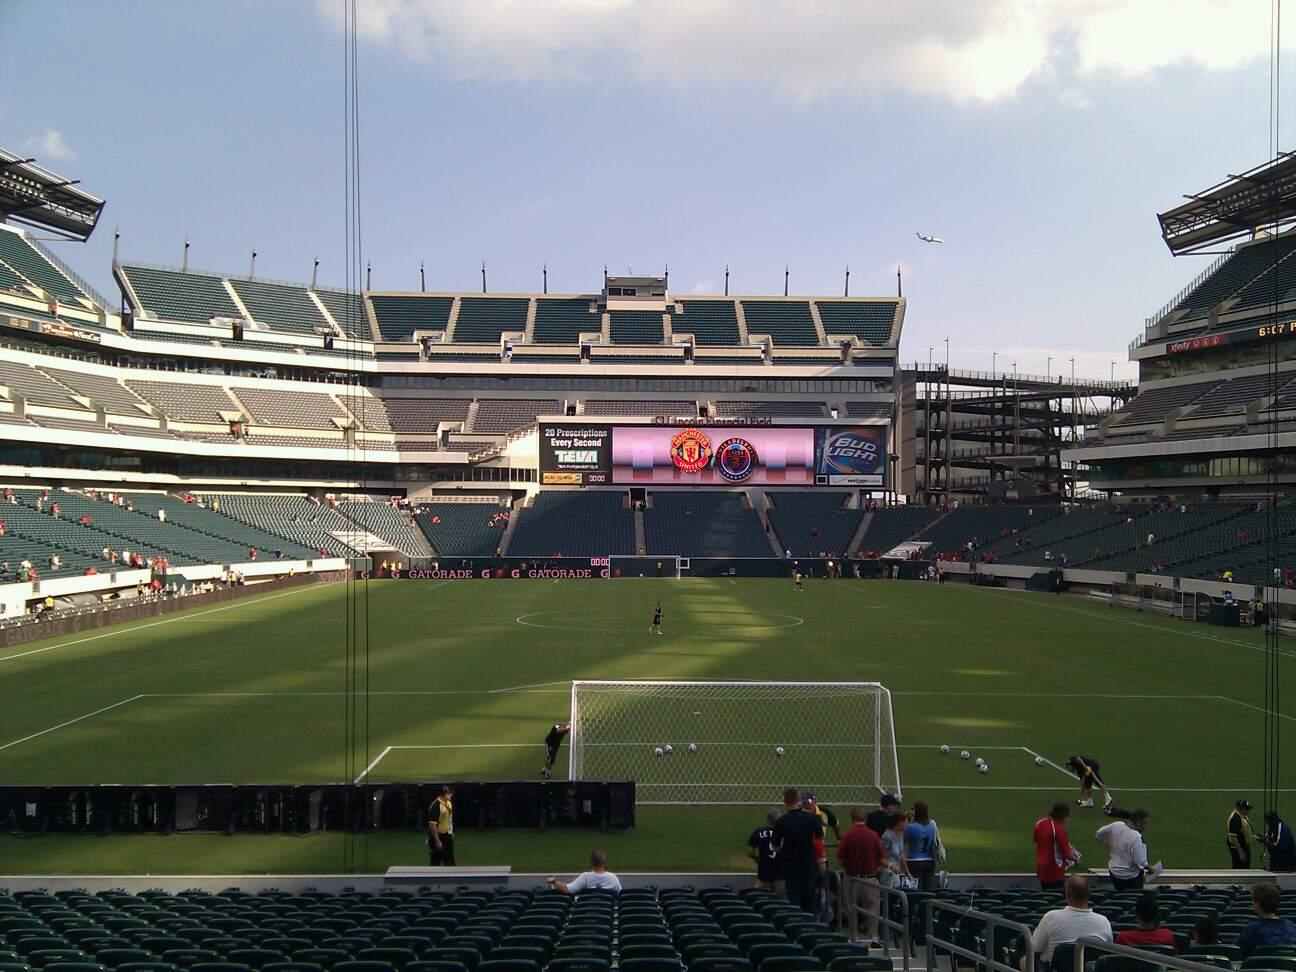 Lincoln Financial Field Section 129 Row 20 Seat 4